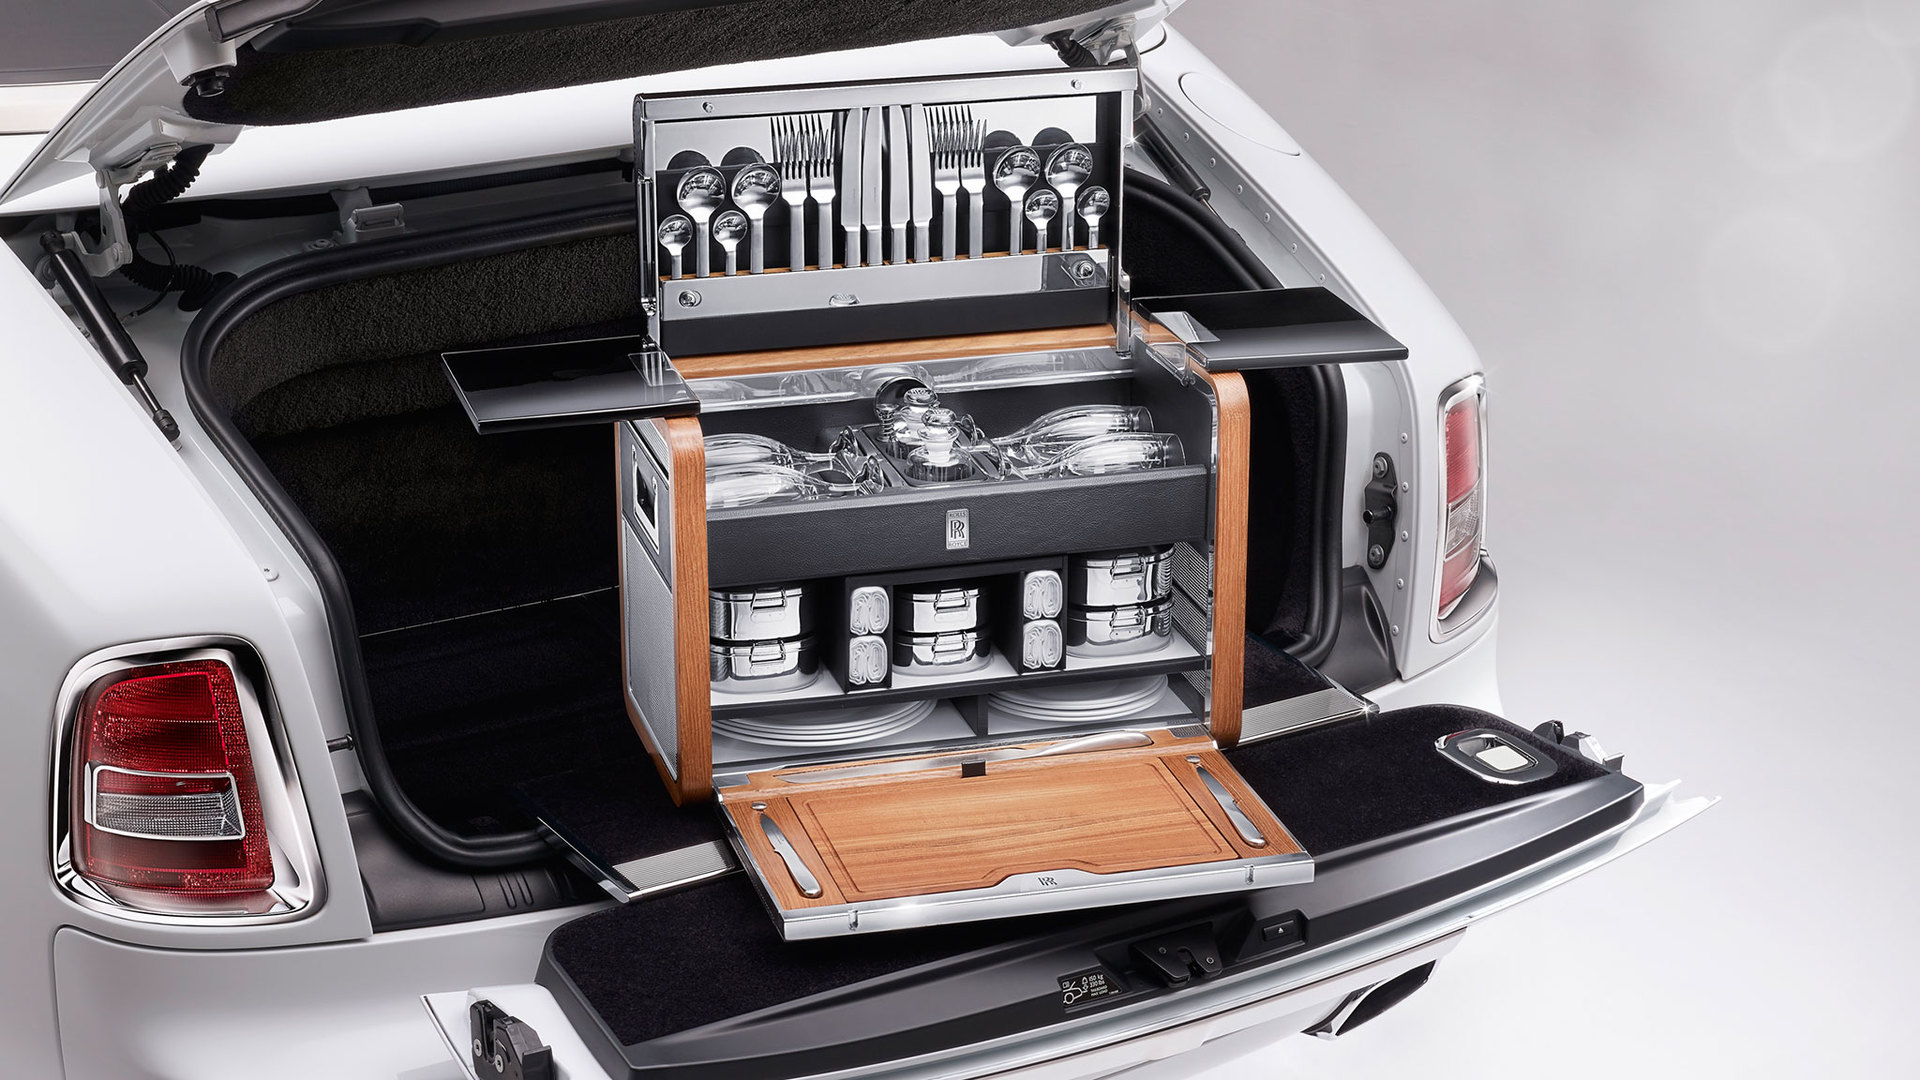 The Rolls-Royce Picnic Hamper in the boot of a light grey Rolls-Royce Phantom